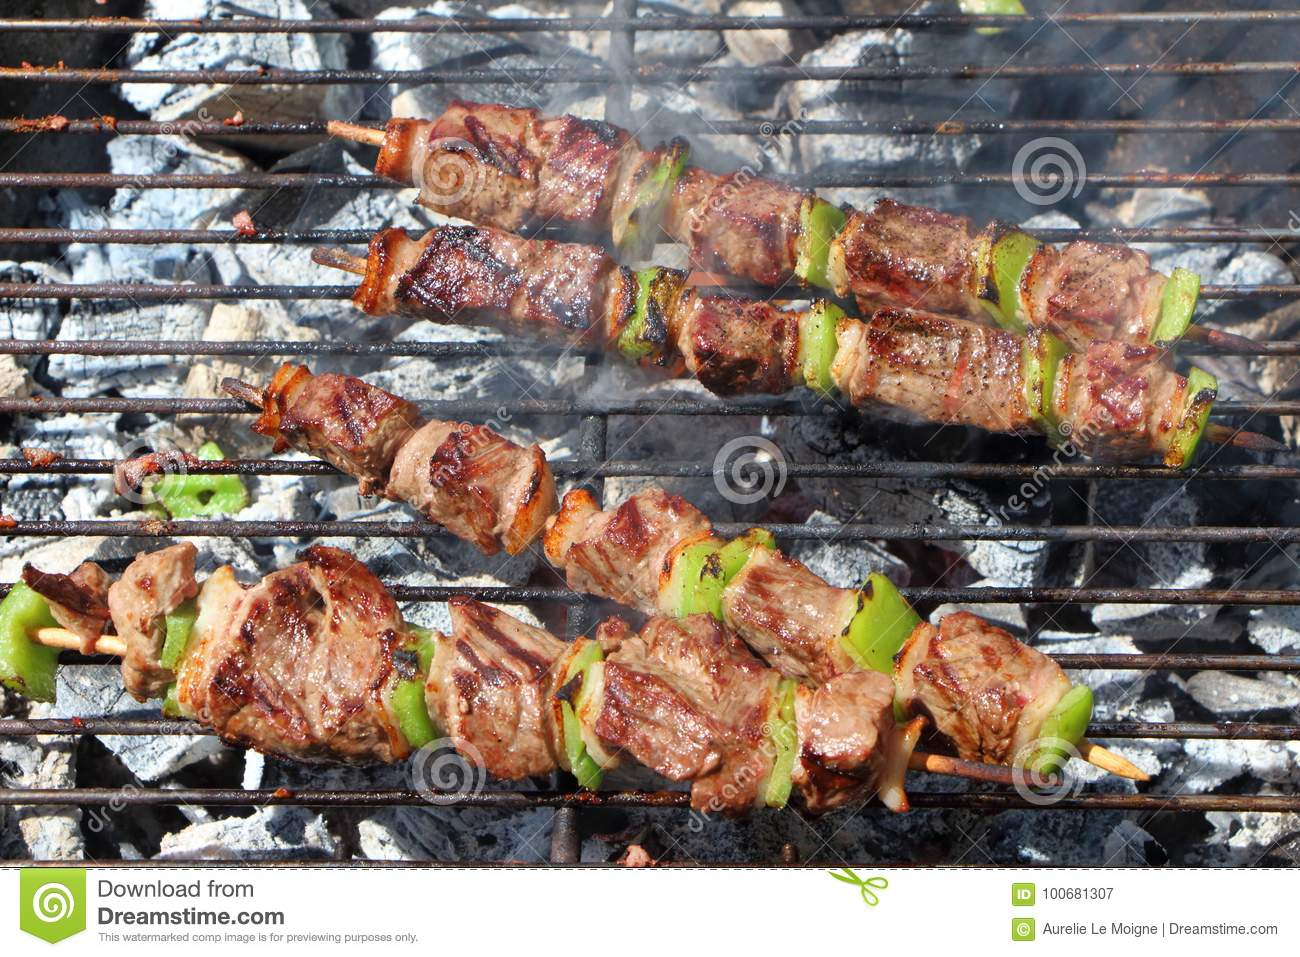 Beef brochette on barbecue